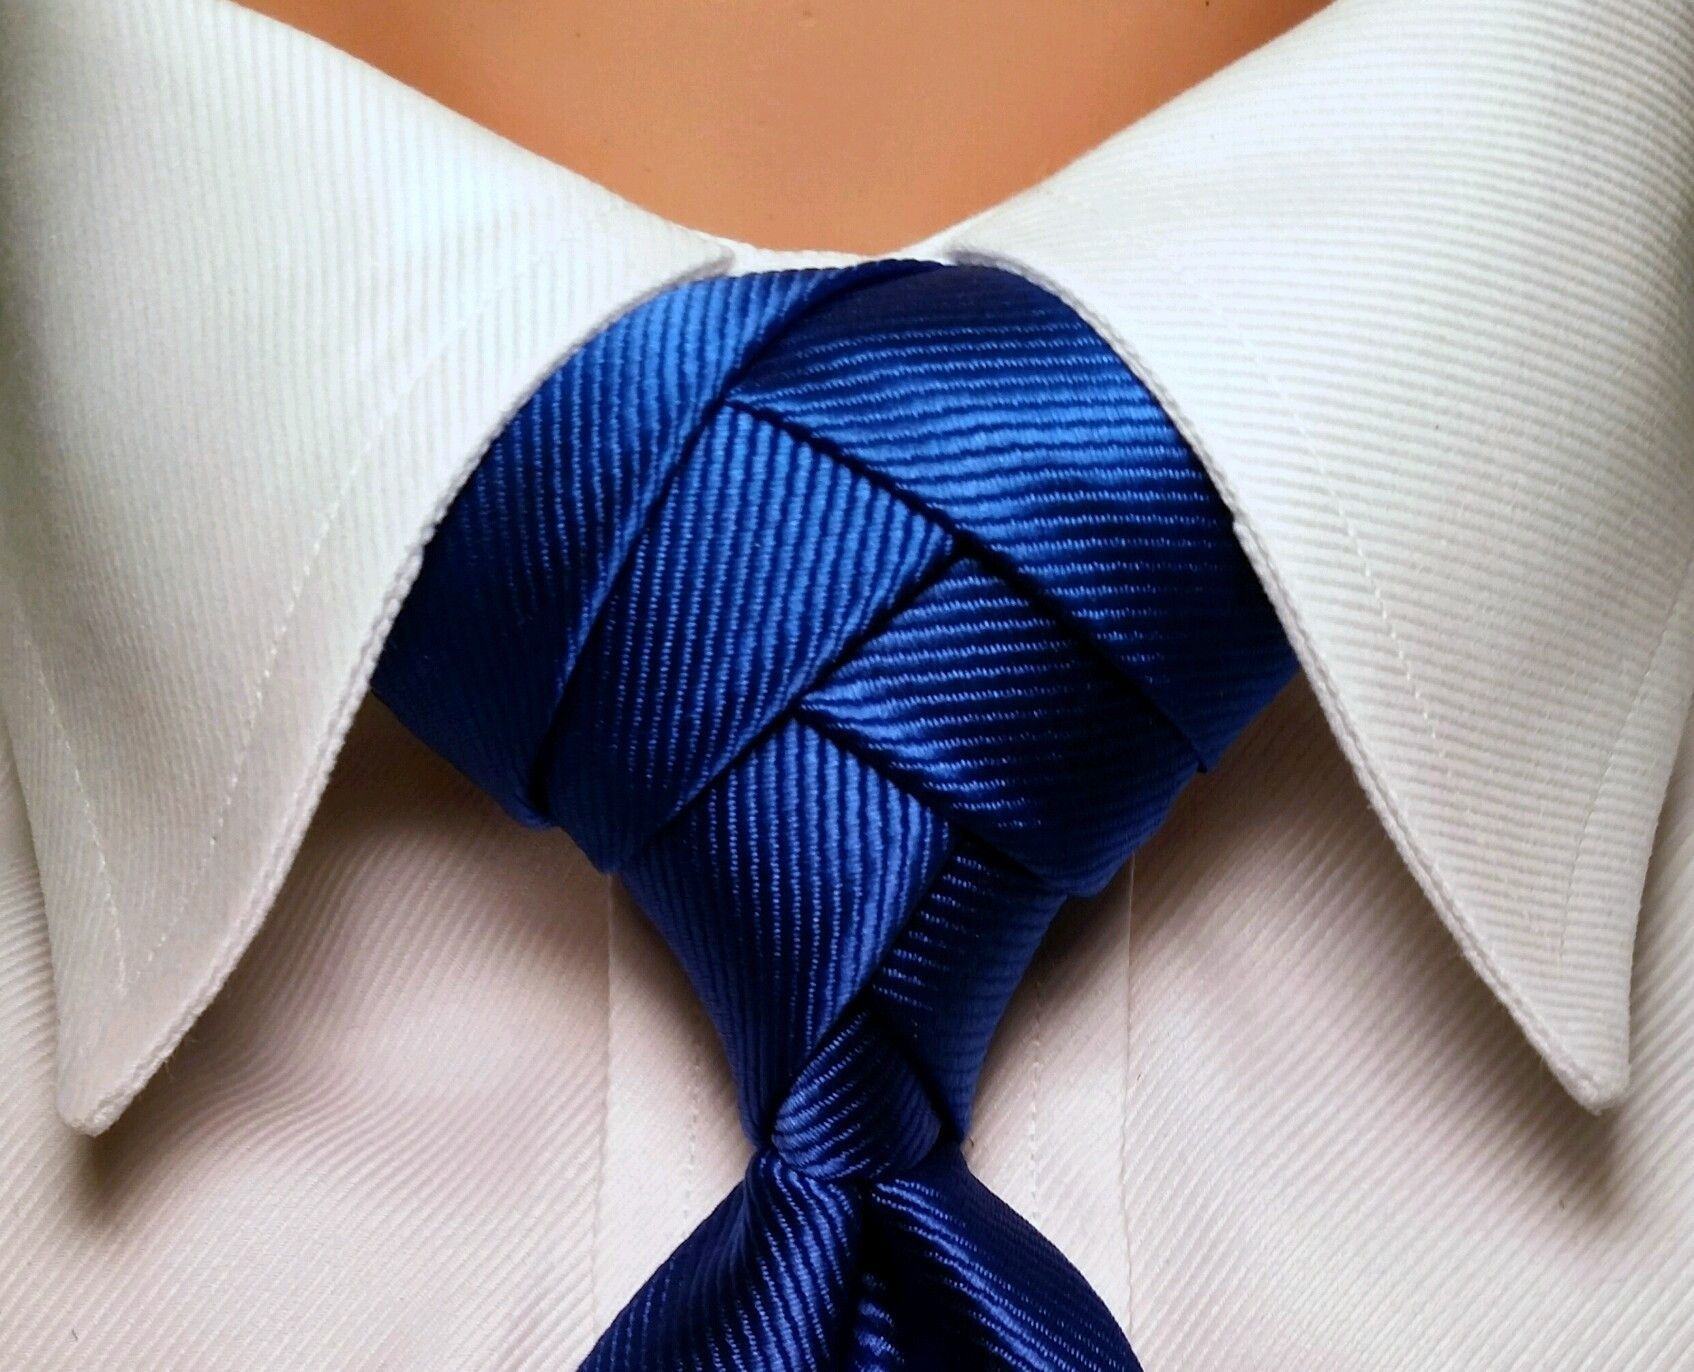 Platinum Trinity Ties Pinterest Tie A Necktie And Knots Knot Diagram Pre Tied Eldredge 100 Polyester Knotted